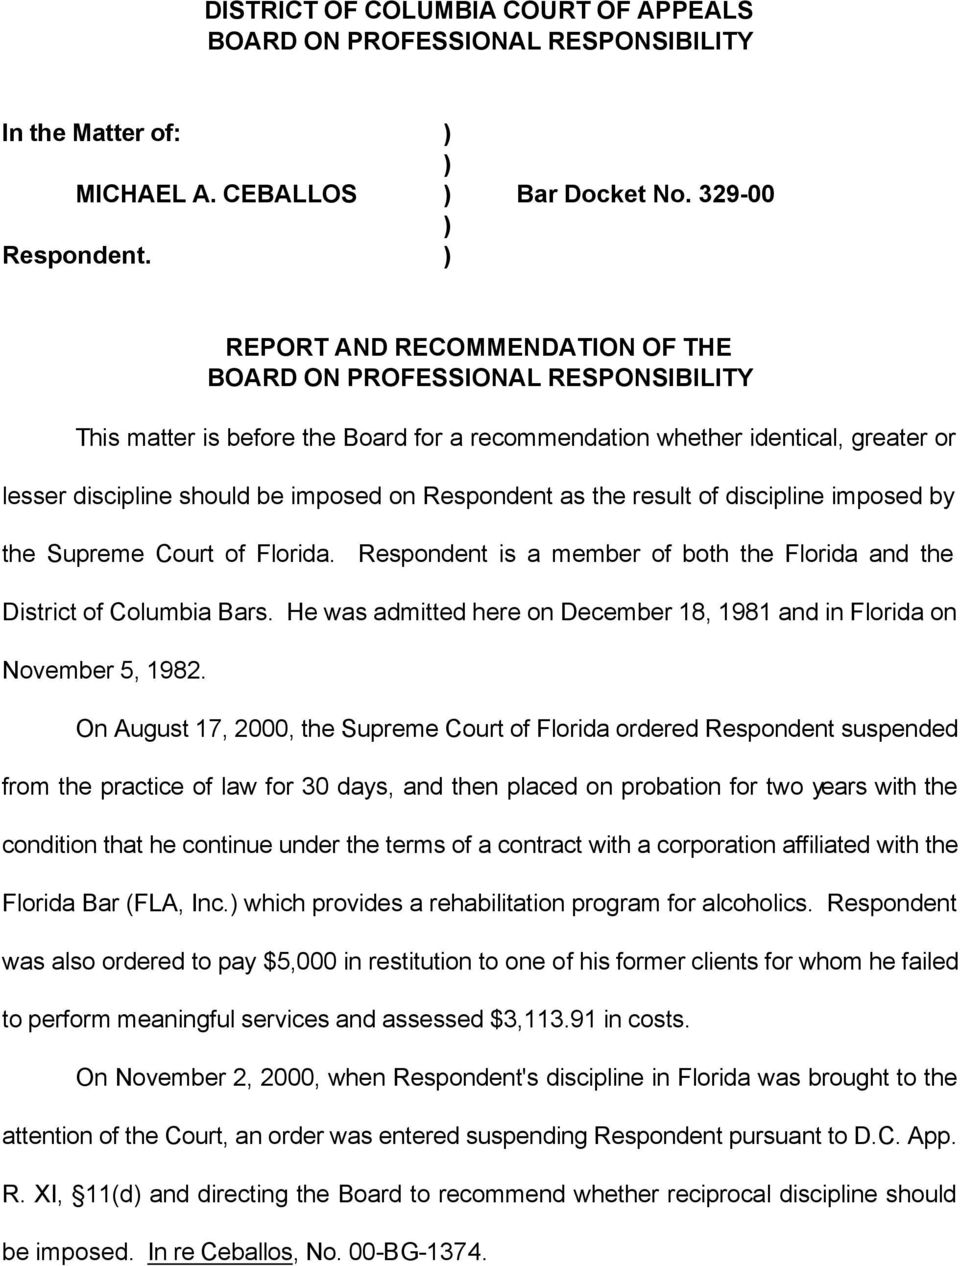 Respondent as the result of discipline imposed by the Supreme Court of Florida. Respondent is a member of both the Florida and the District of Columbia Bars.